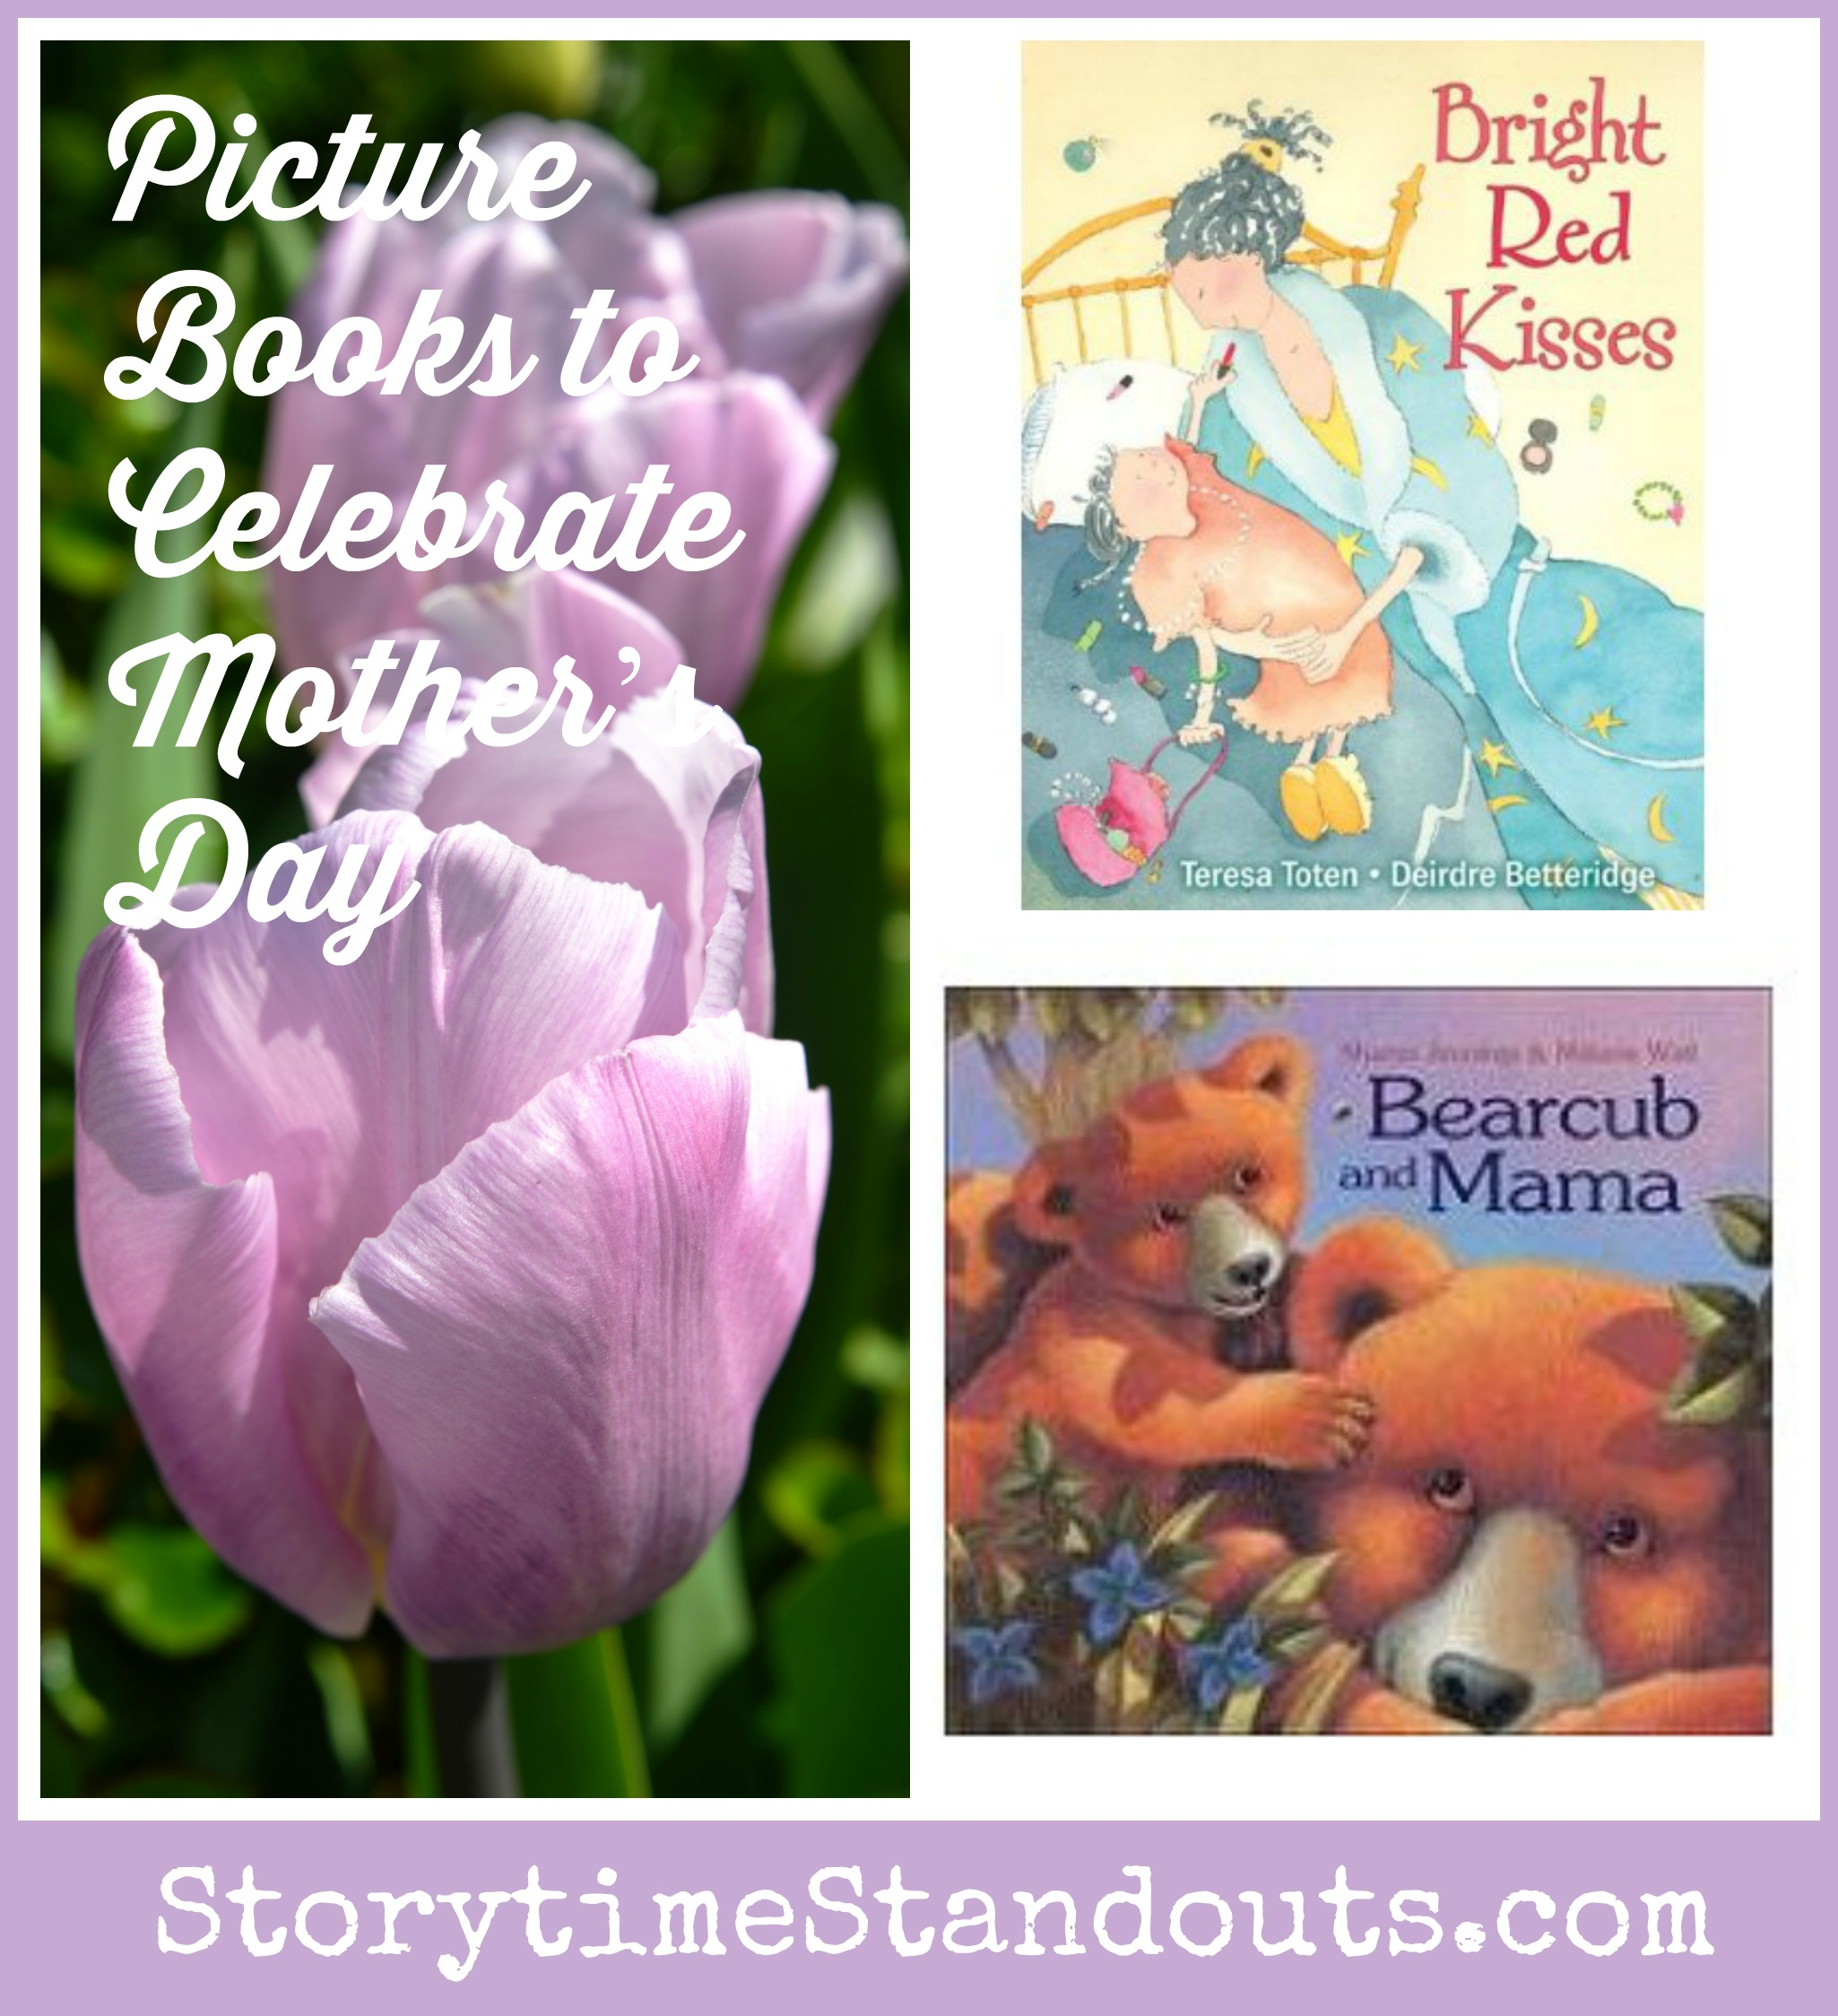 Storytime Standouts Recommends Mother's Day Picture Books